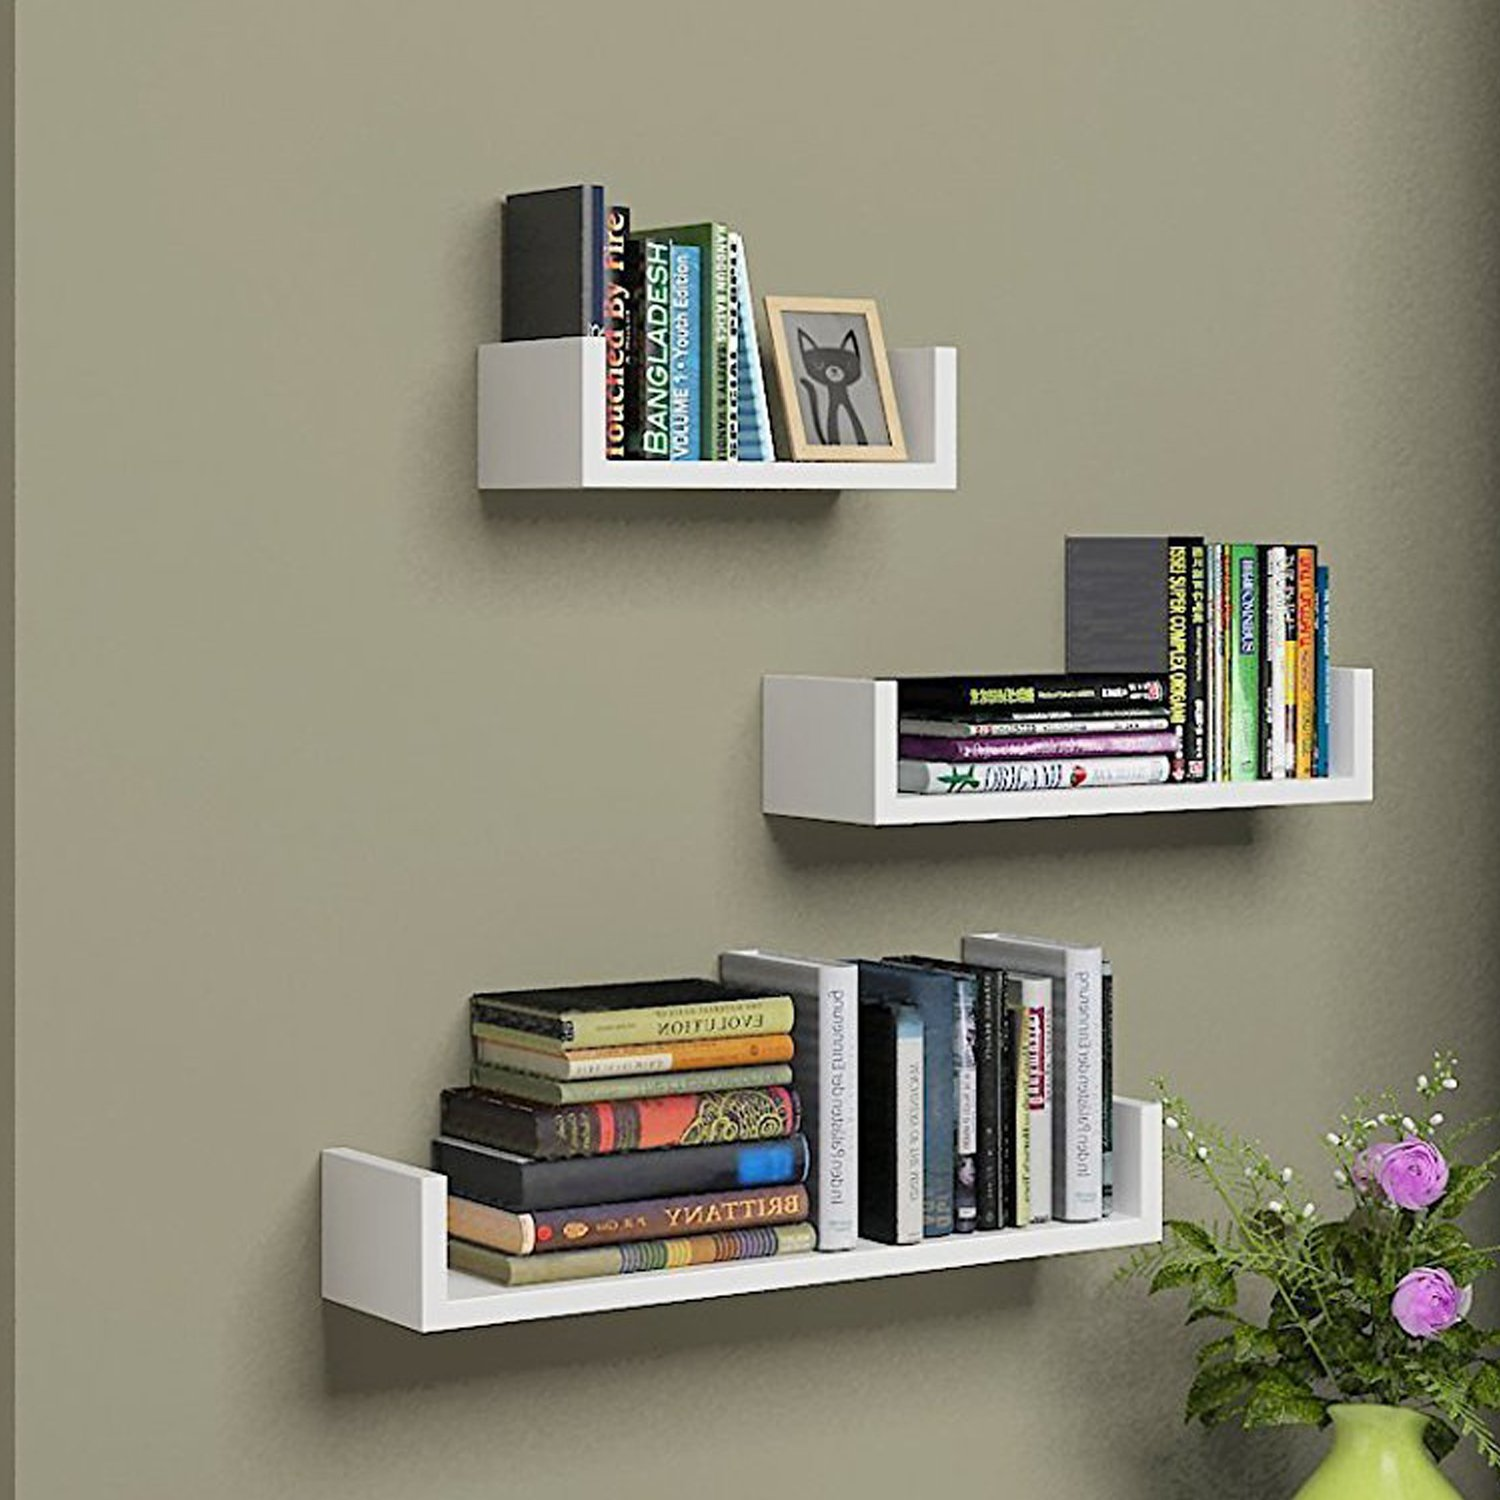 Mewalker Floating Wall Shelves, U Shaped Bathroom Shelves Set of 3 Display Shelf for Home Decoration (US Stock) (White)